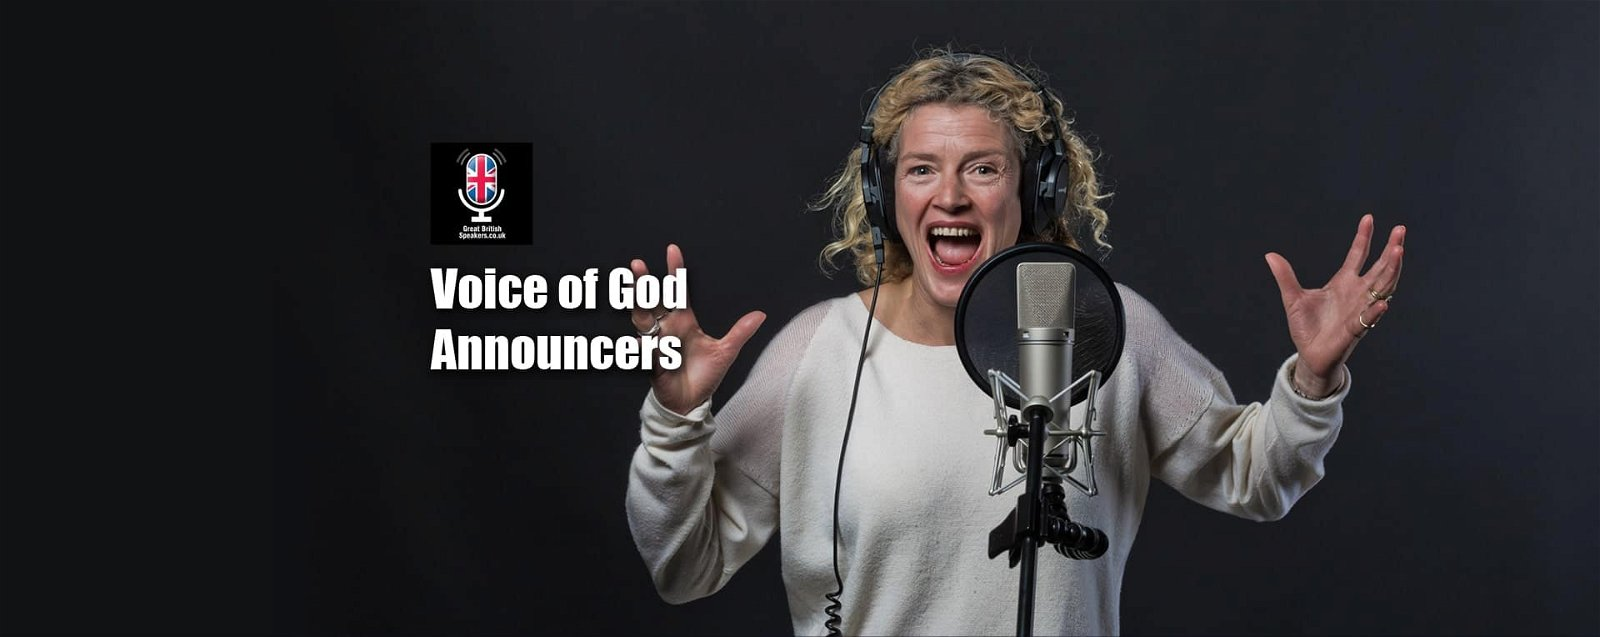 Voice of God Announcers Slider Great British Speakers-min